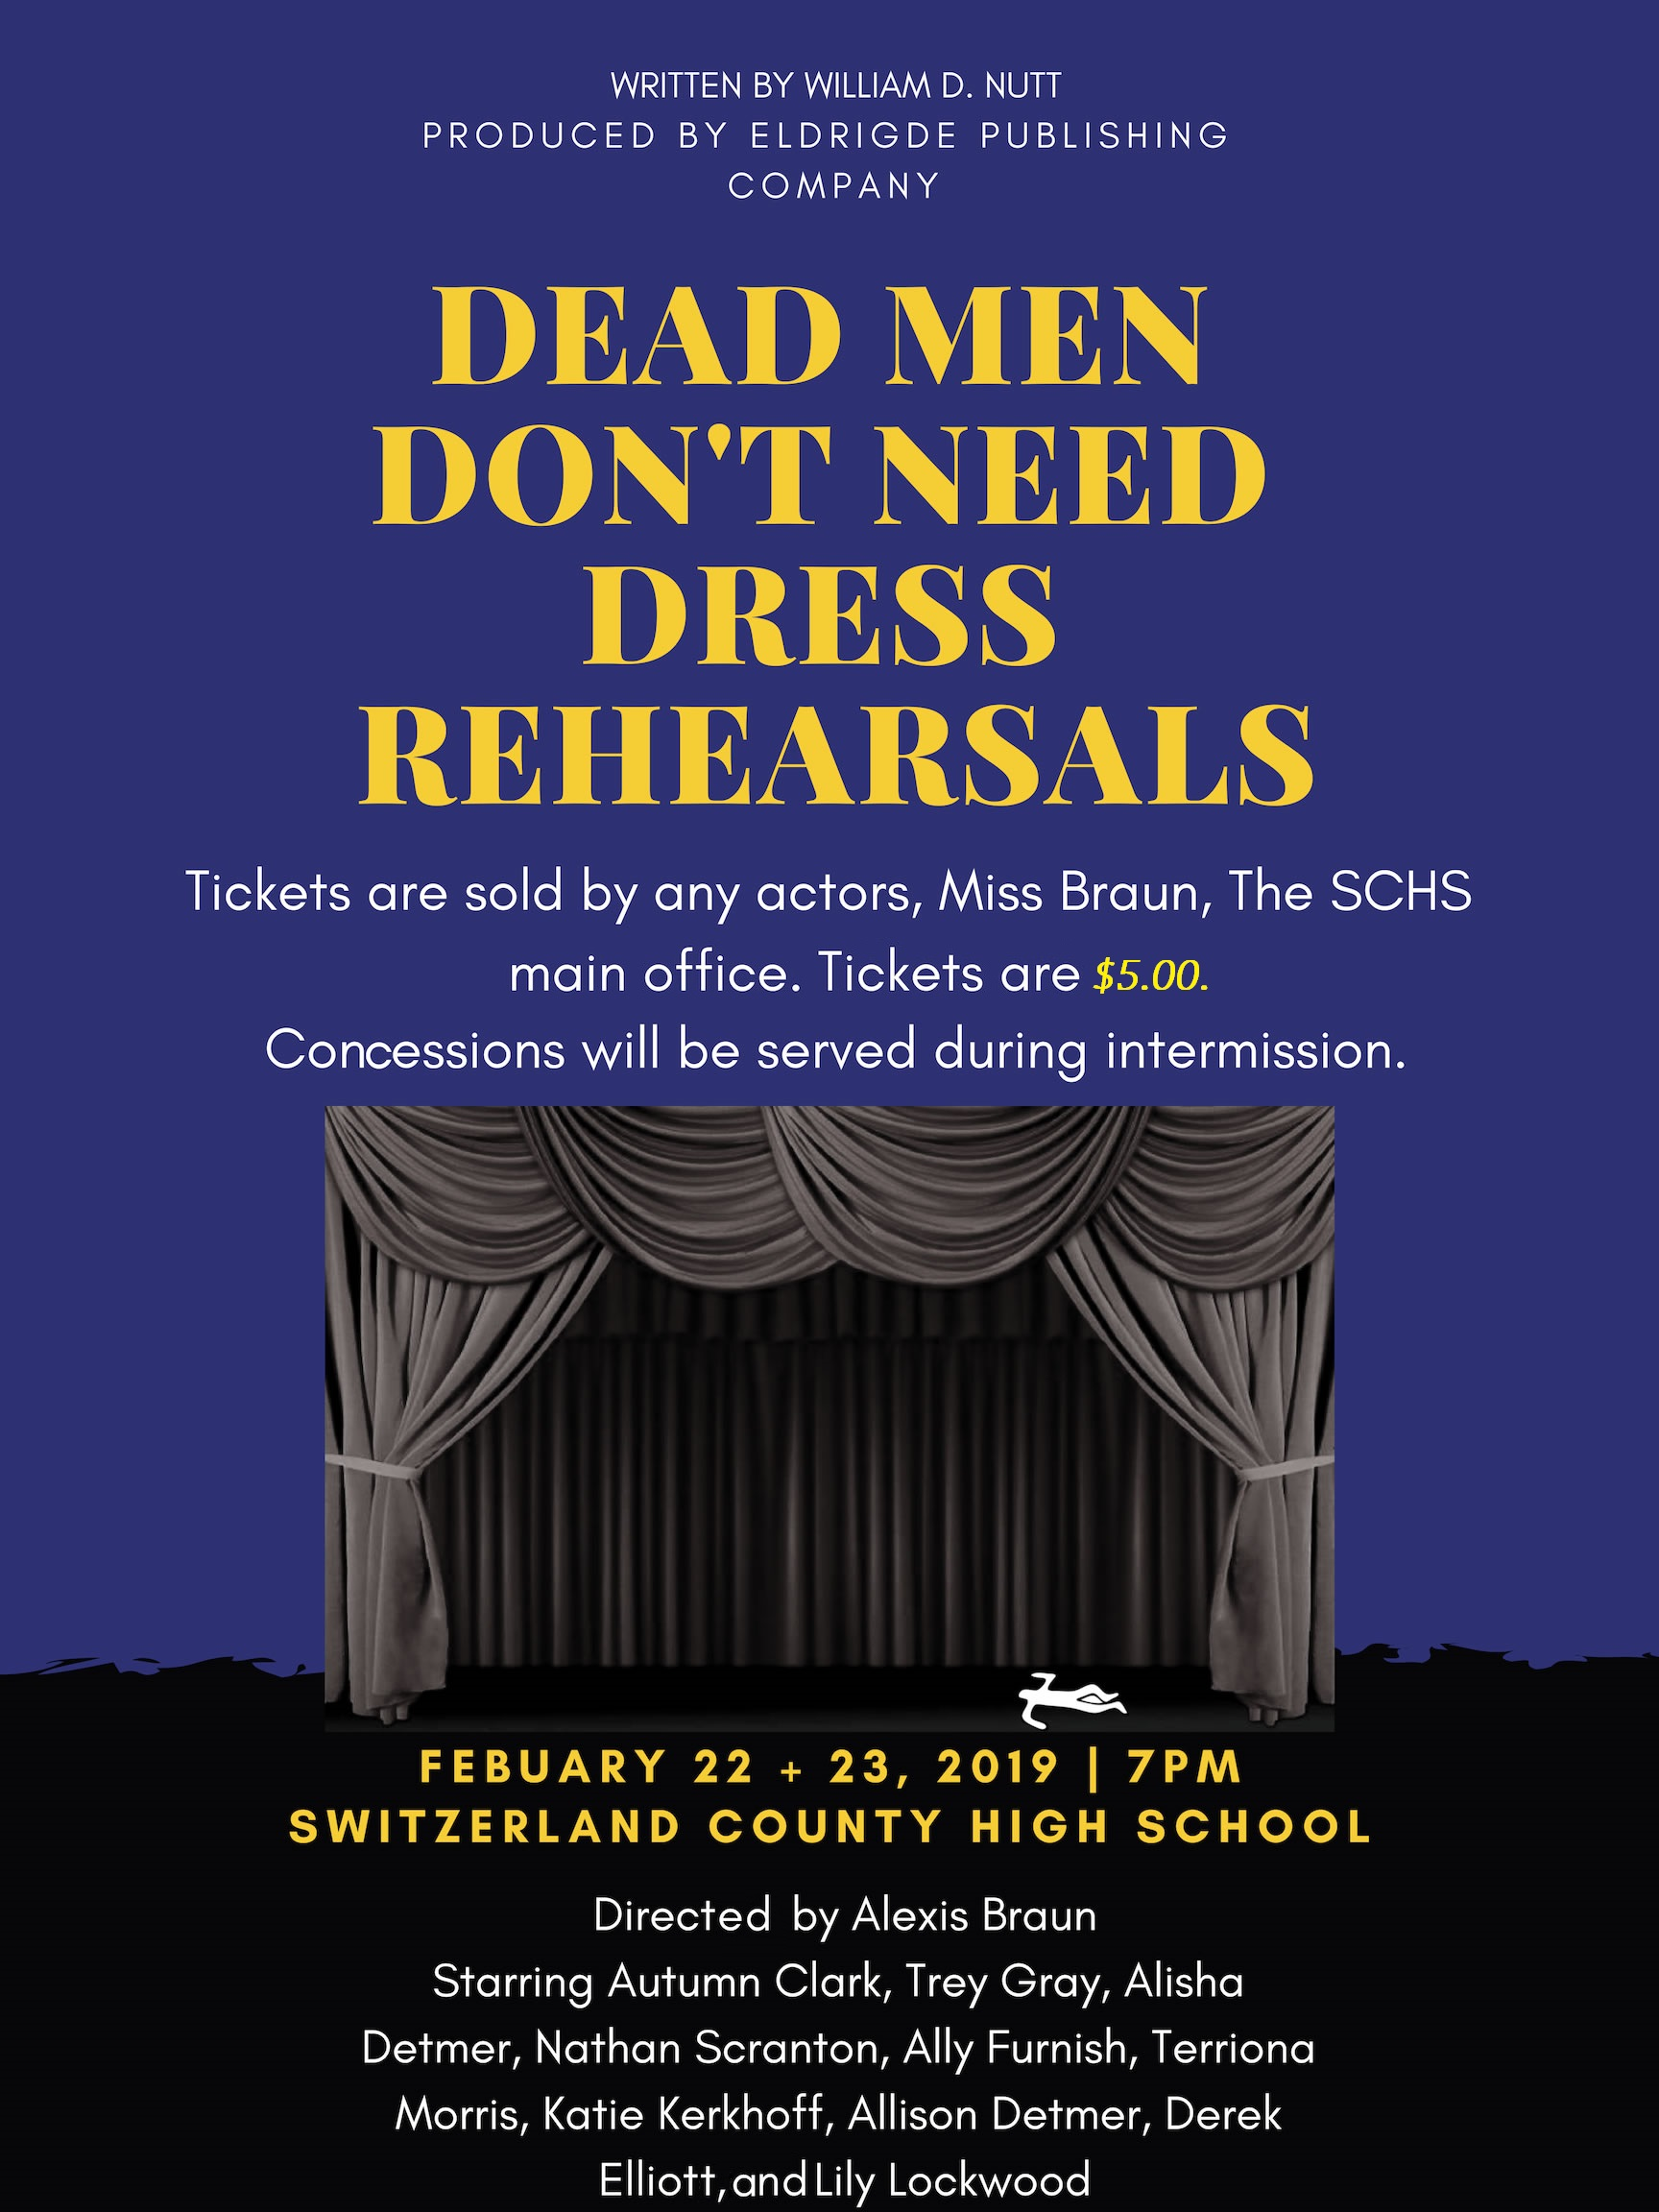 HS Drama Club Performance- February 22, 23